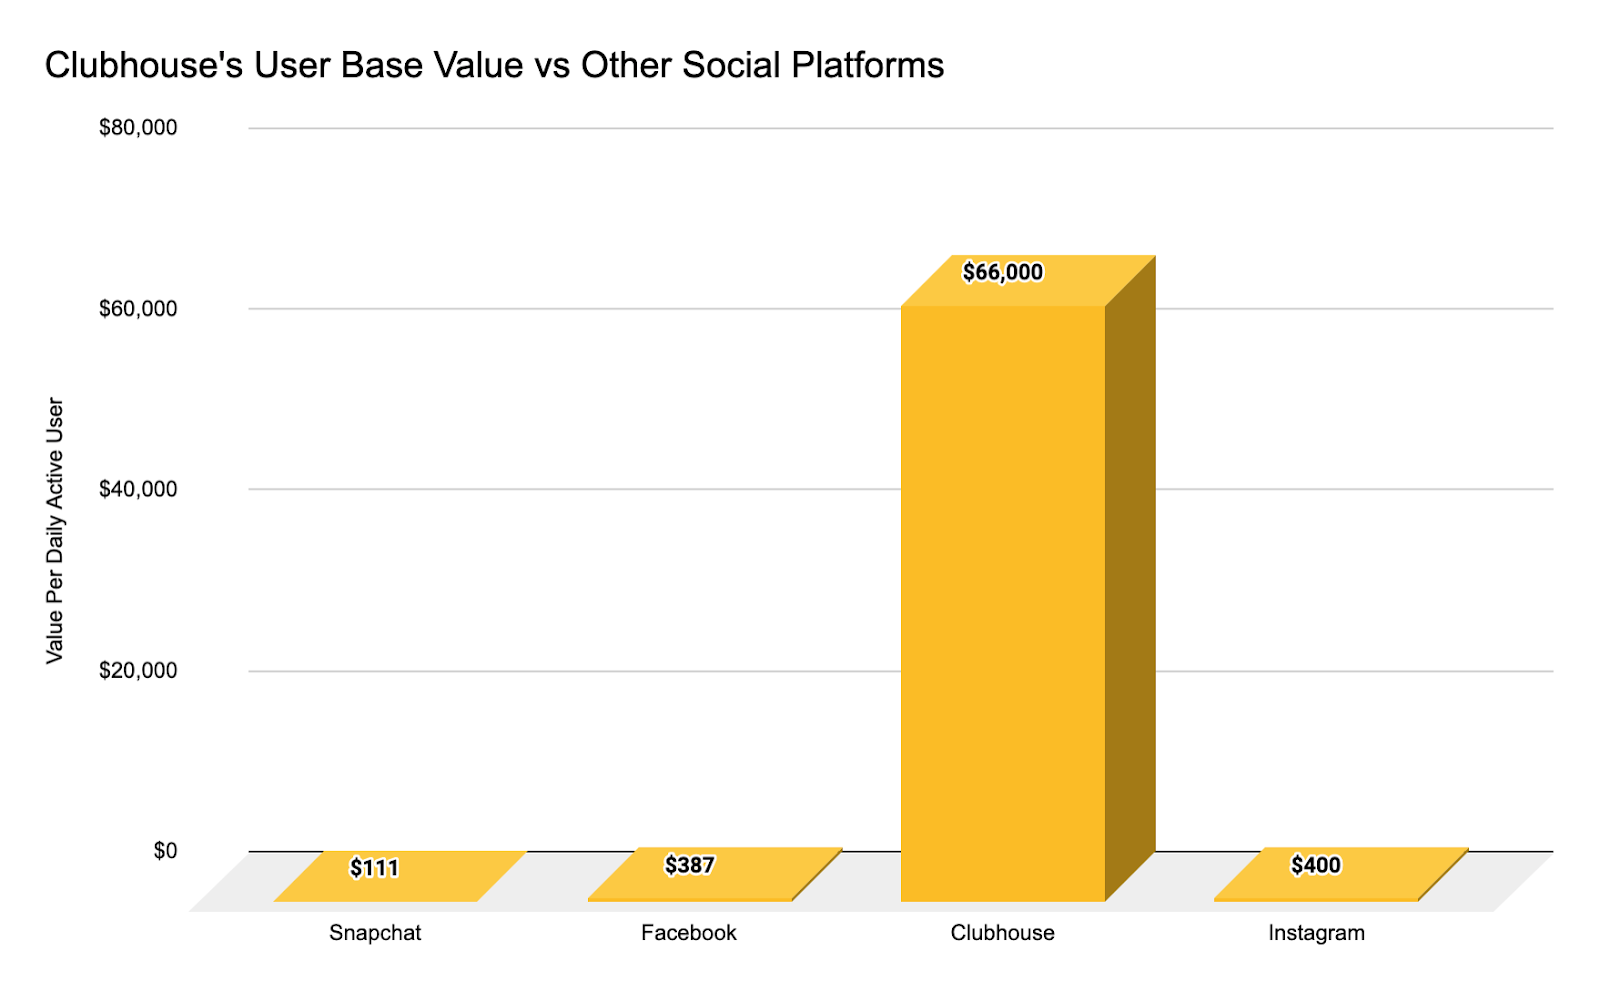 Cloubhouse's User Base Value vs Snapchat, Facebook, and Instagram